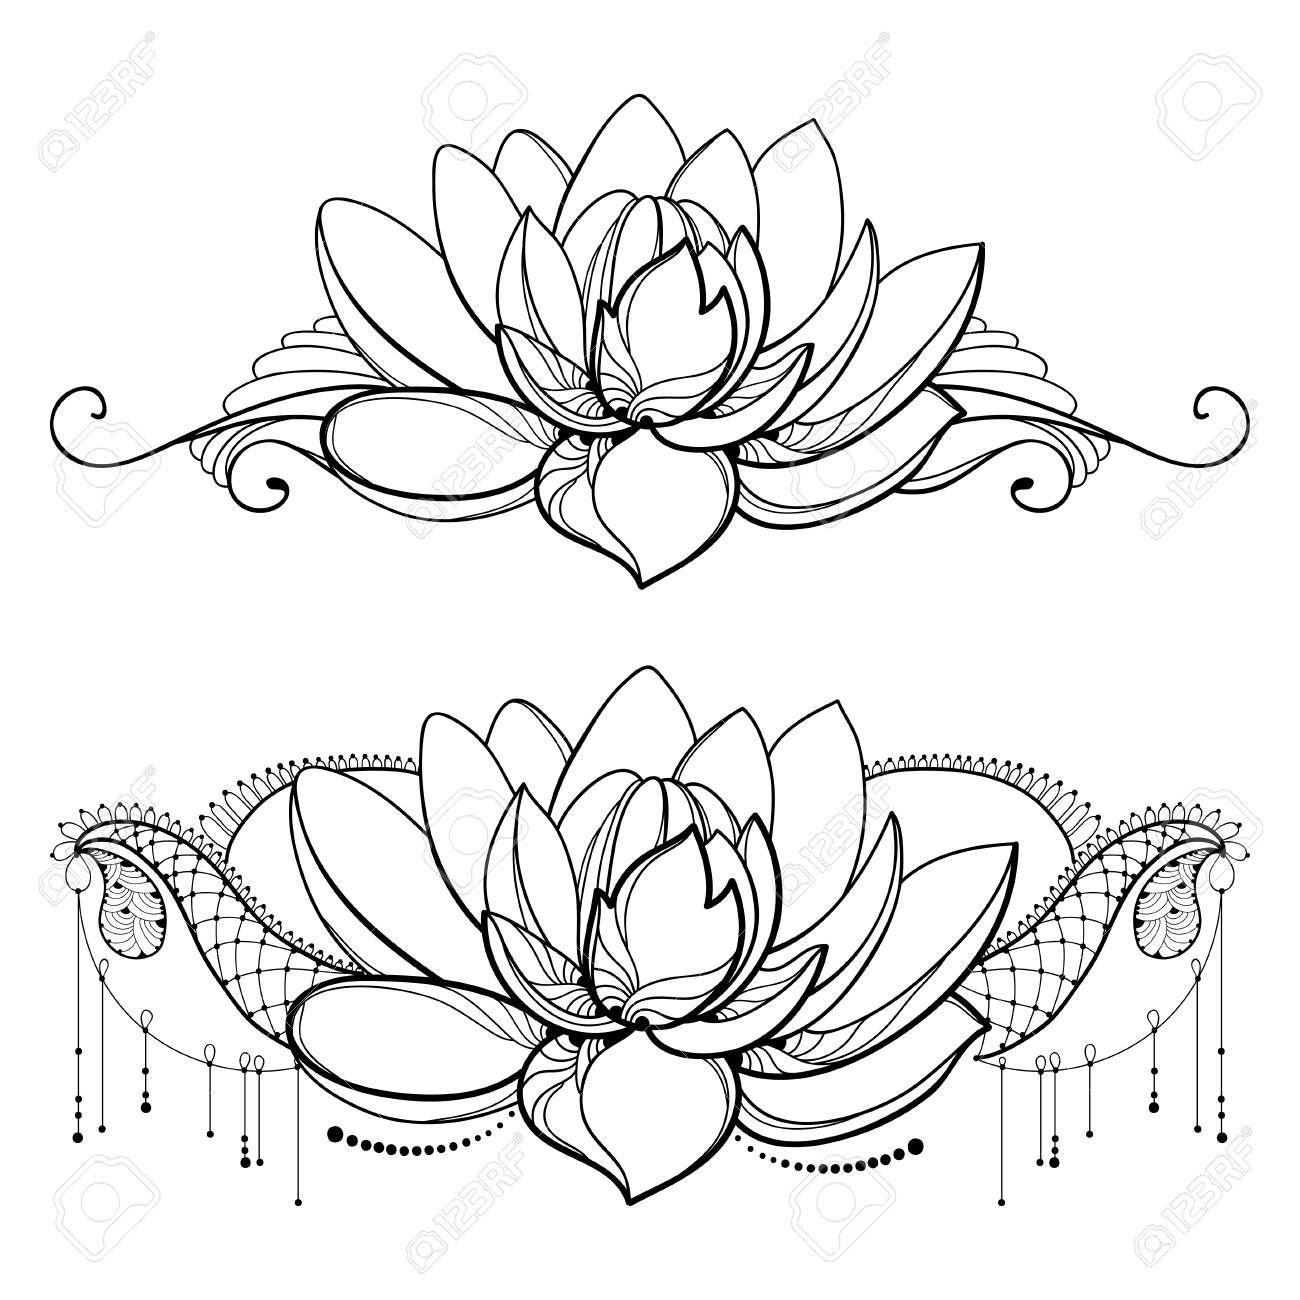 Stock Vector Lotus outline, Lotus flower, Flowers